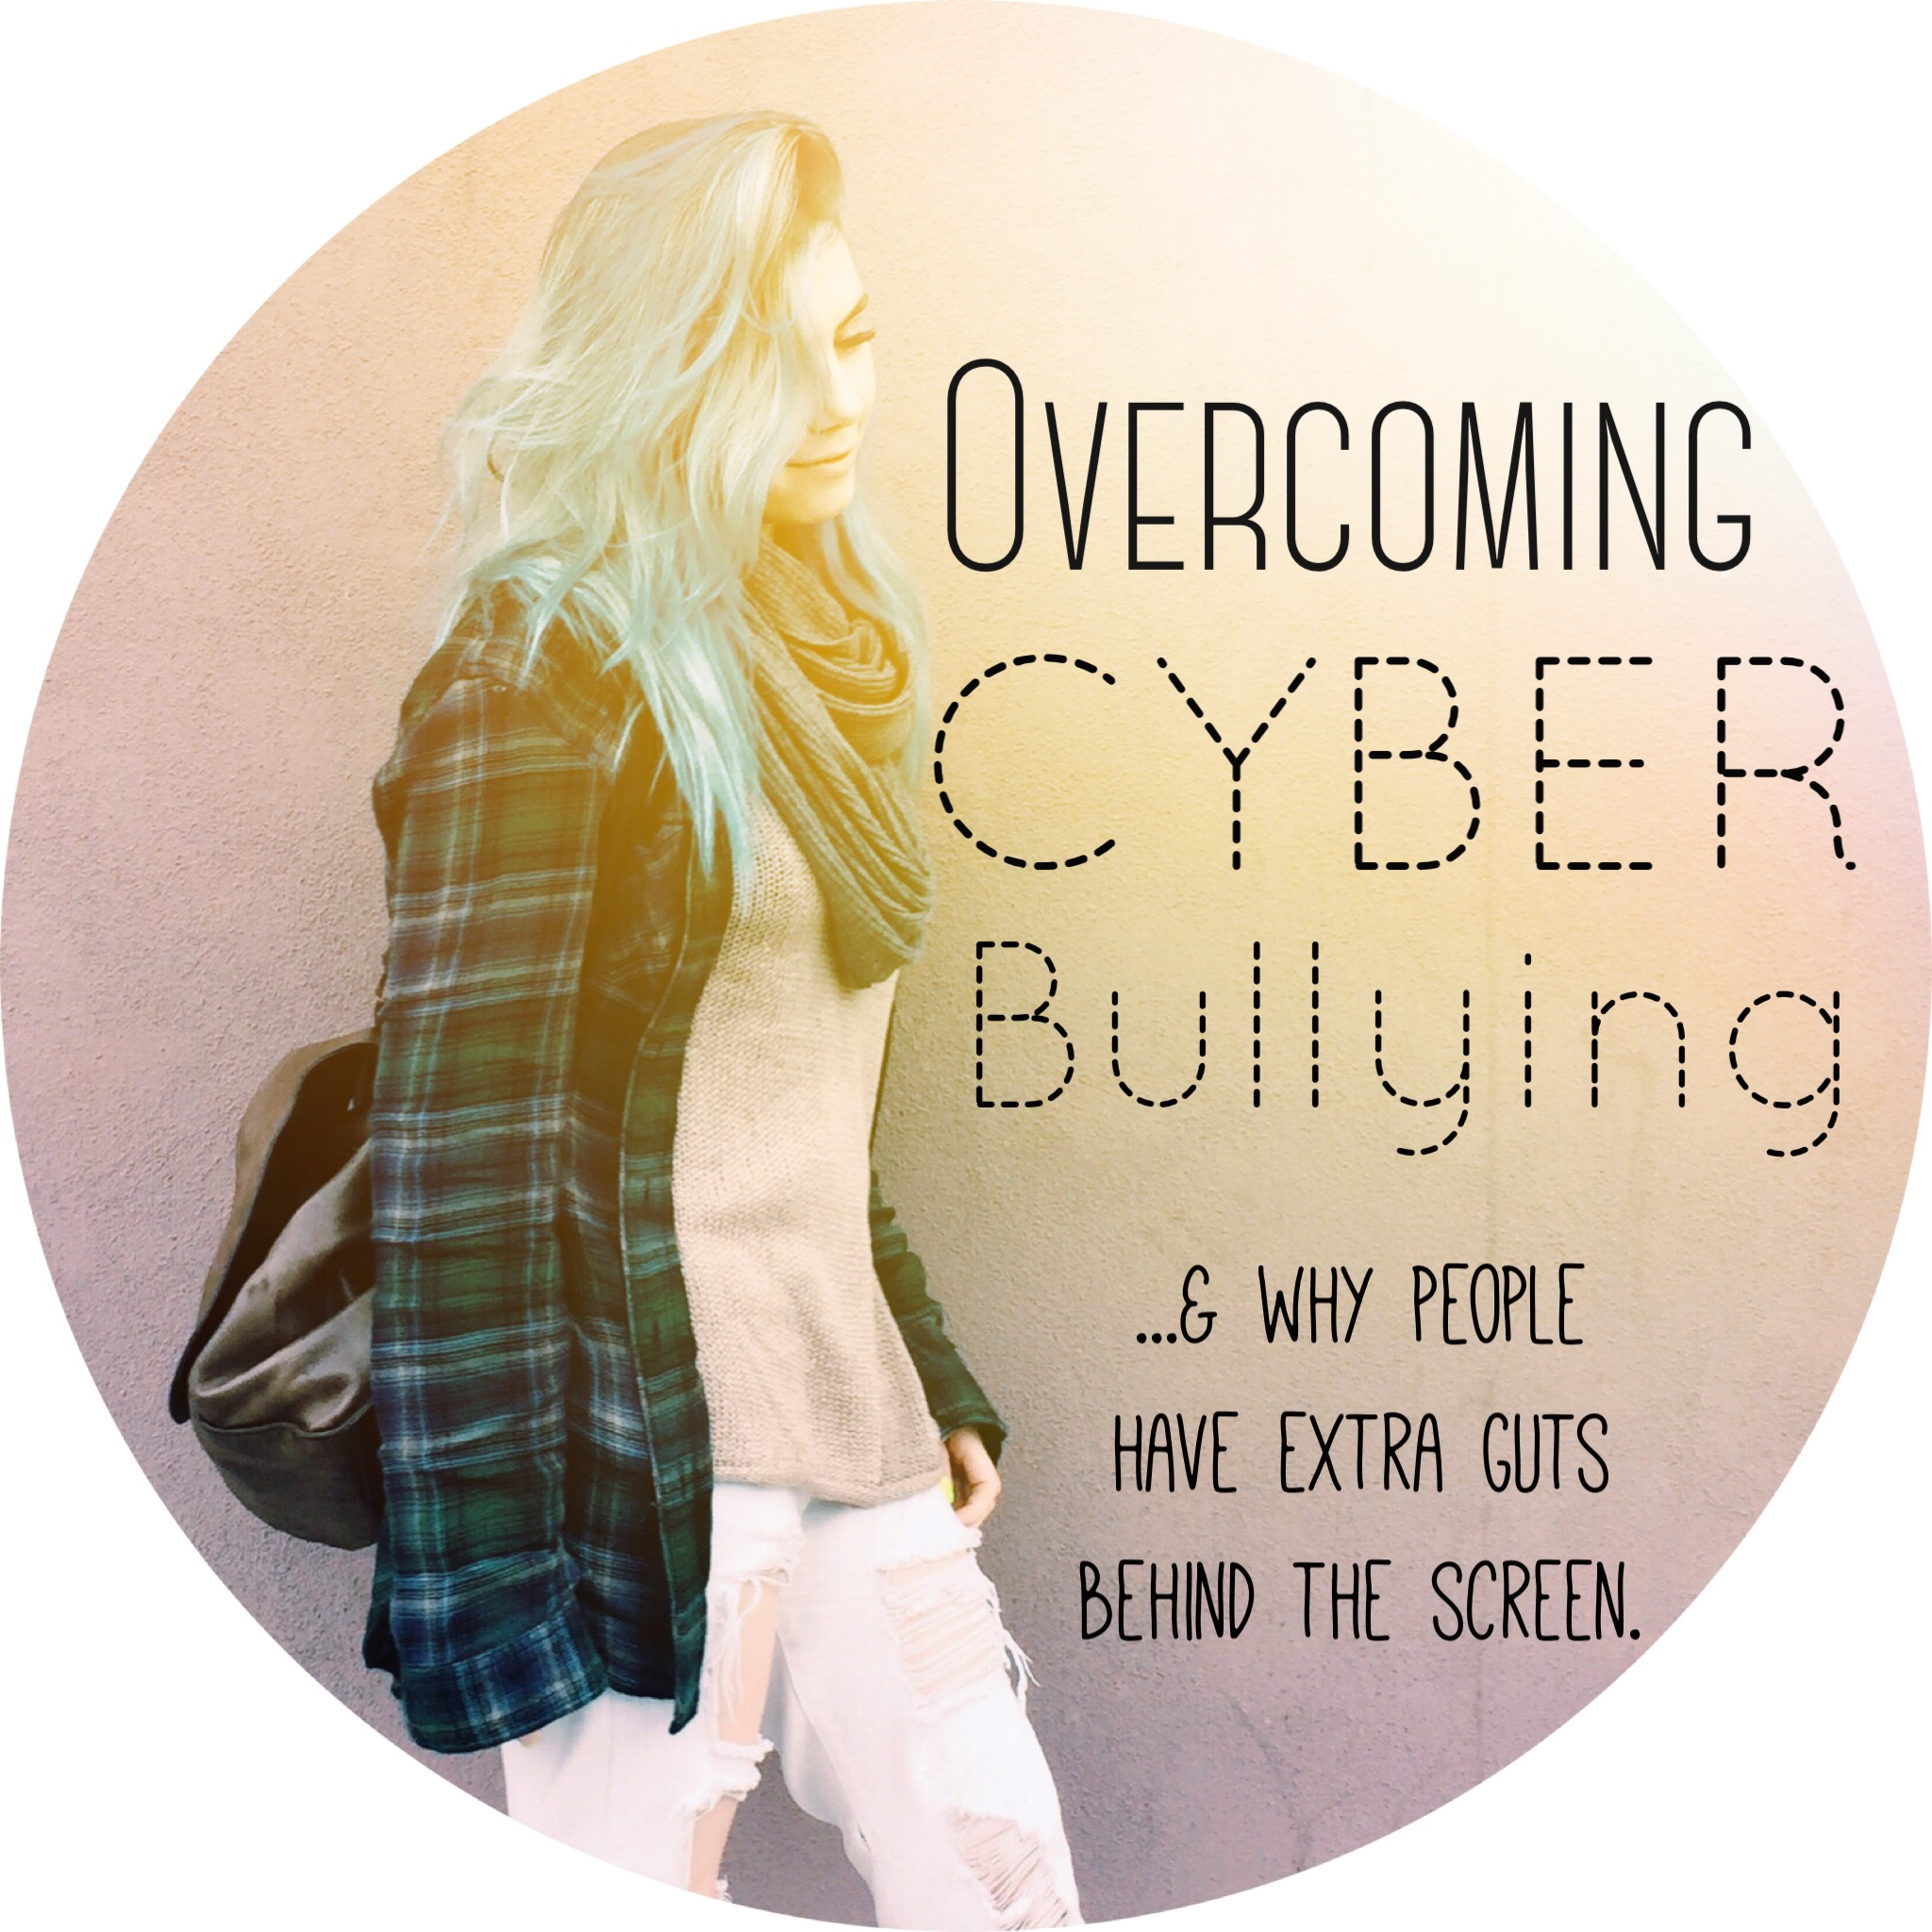 OVERCOMINGCYBERBULLYING